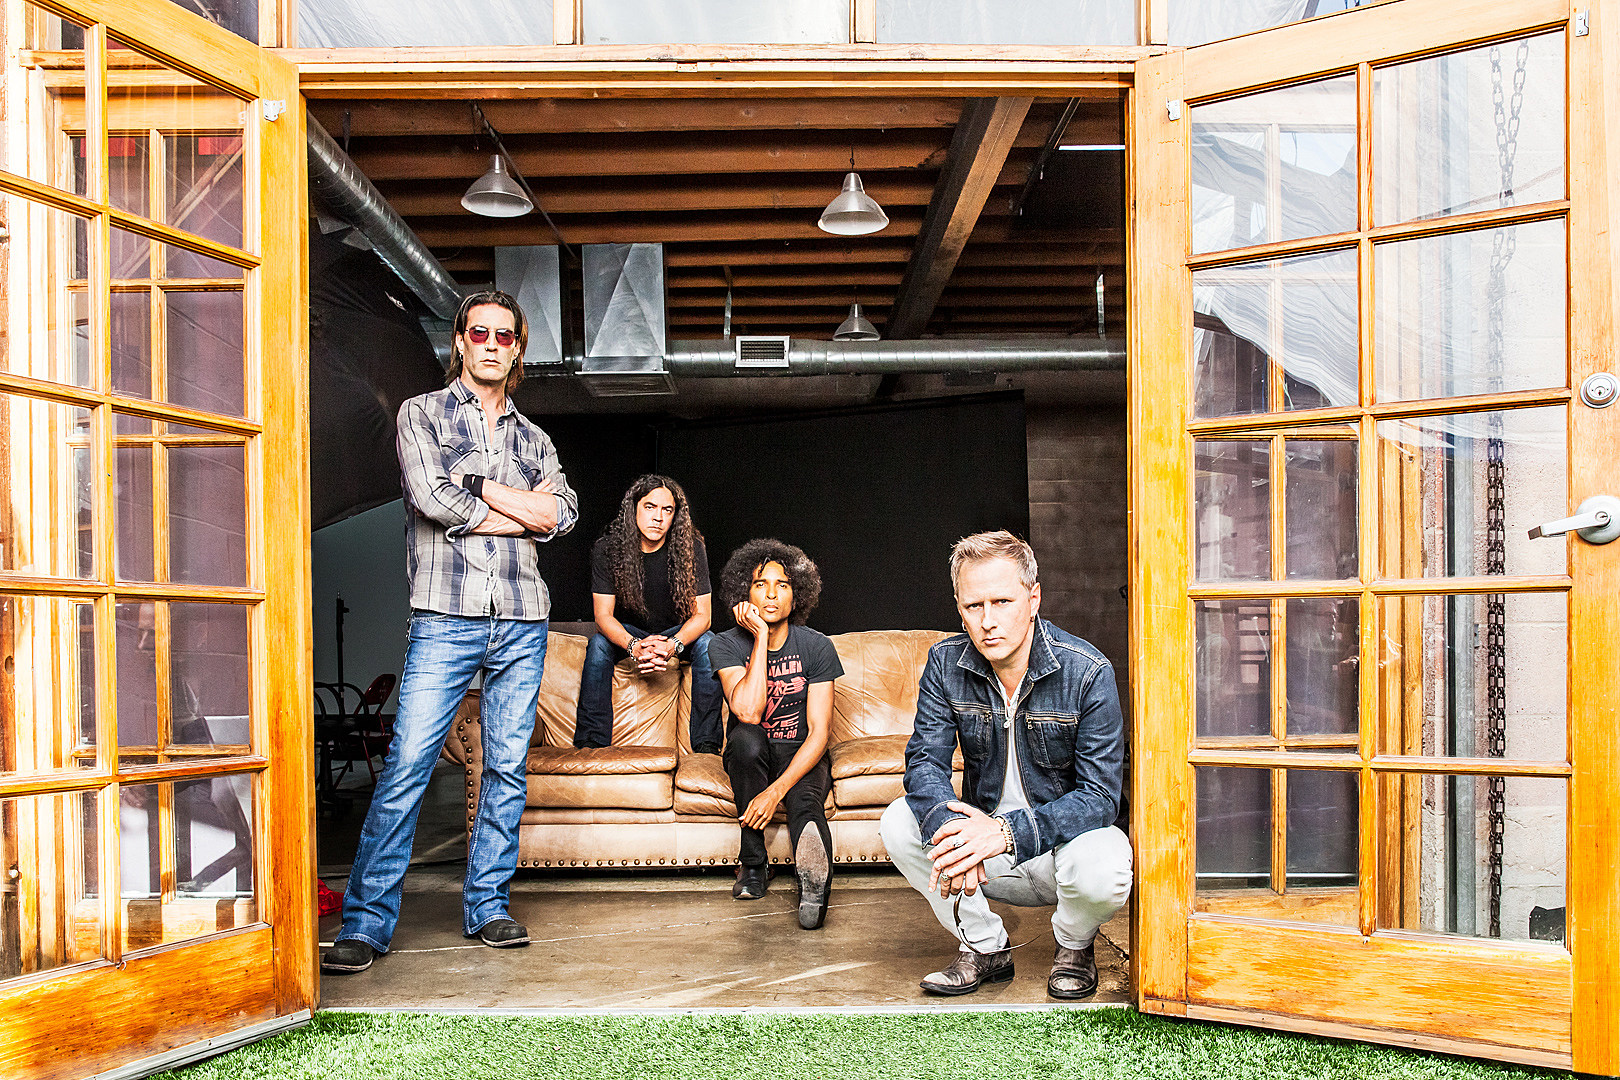 Alice in Chains & Friends Reveal Fantasy Football League + Benefit Auction Details